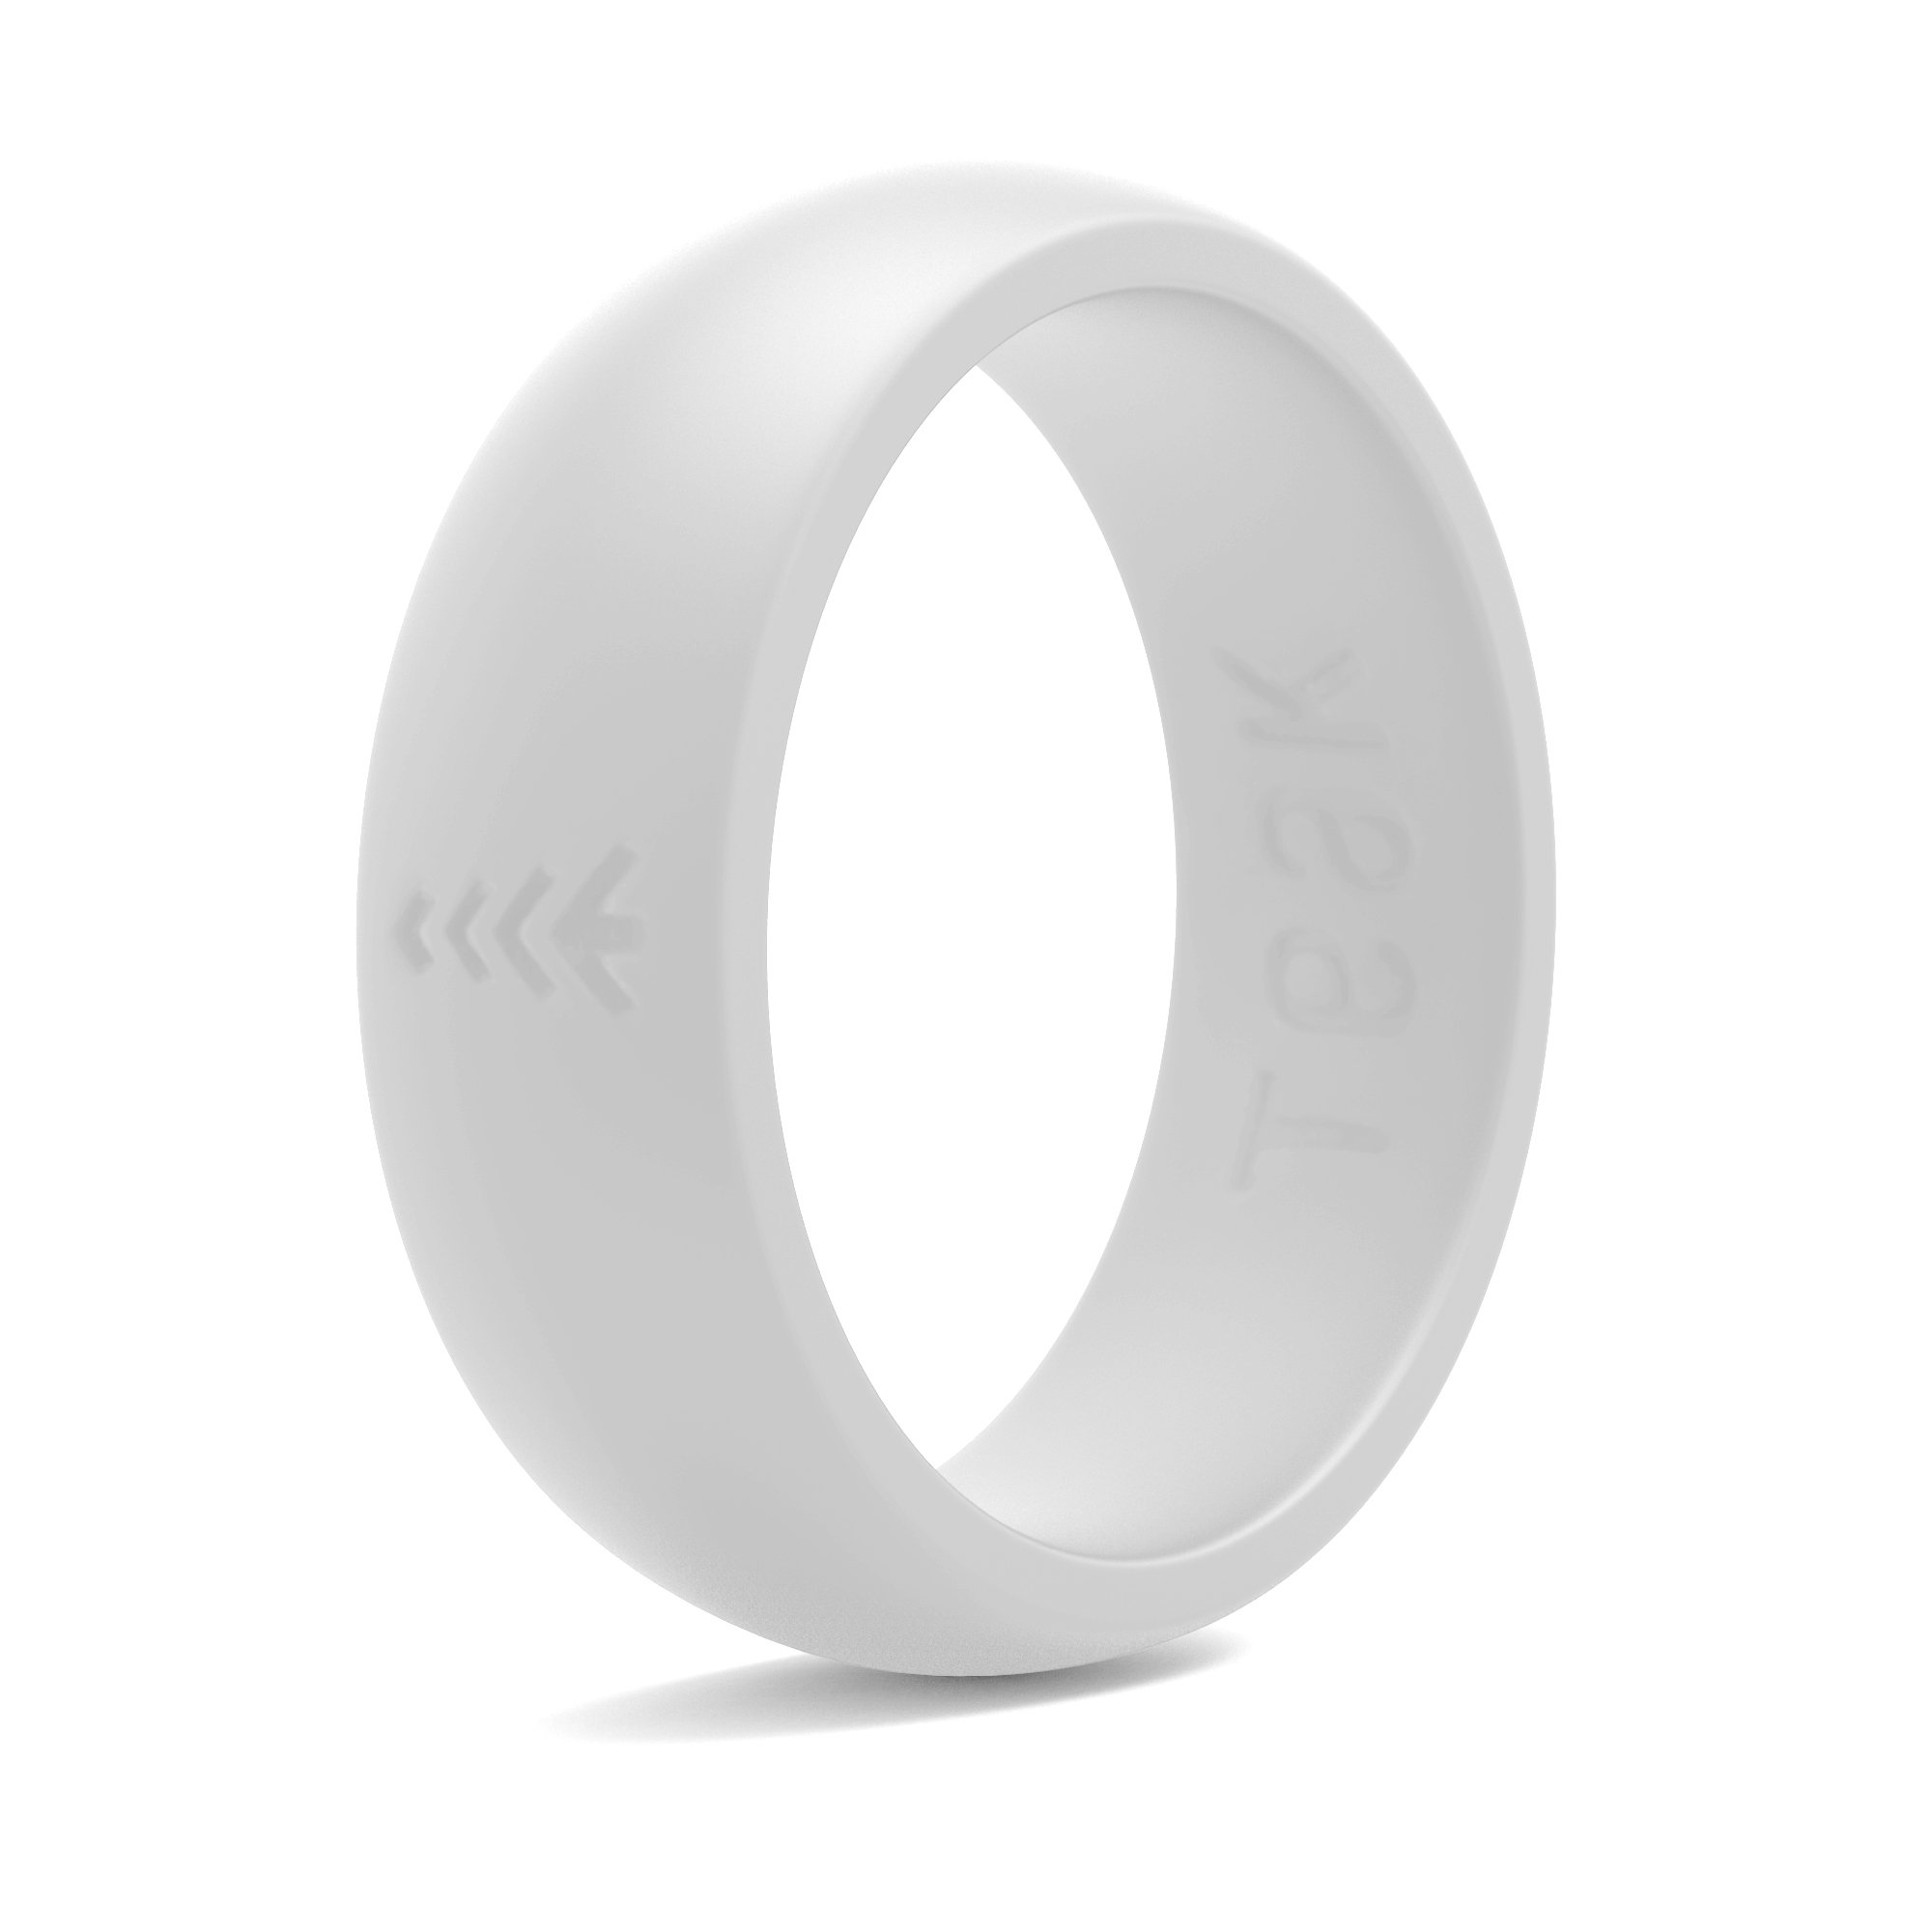 This is a picture of Silicone Wedding Ring for Women. Rubber Wedding Band for Every Day Use - Yoga, Training, Sports, Military, Work, Travel and Outdoor - White - Size 43